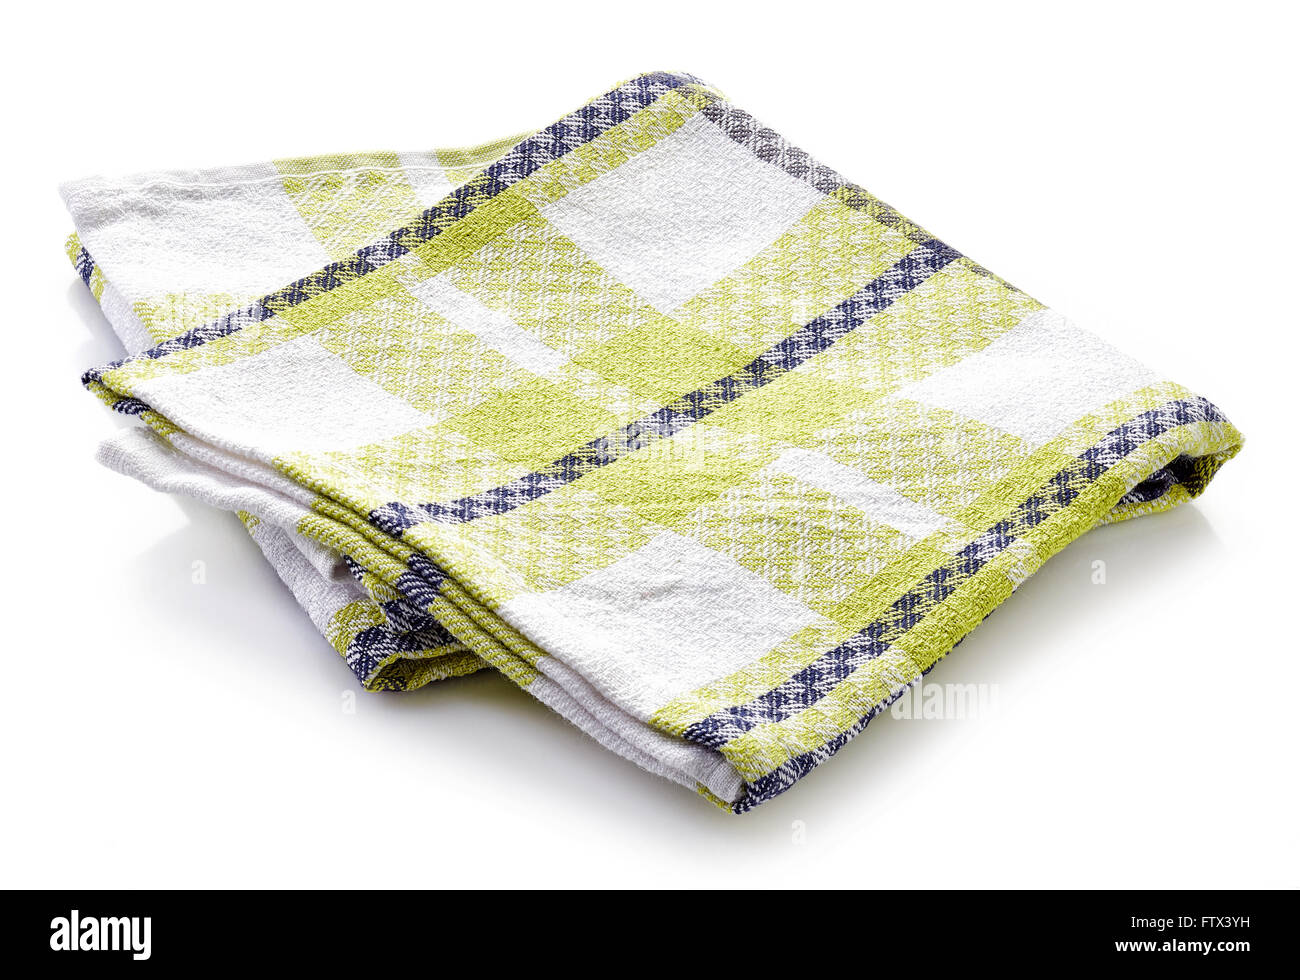 Plaid Kitchen Towel Isolated On White Background